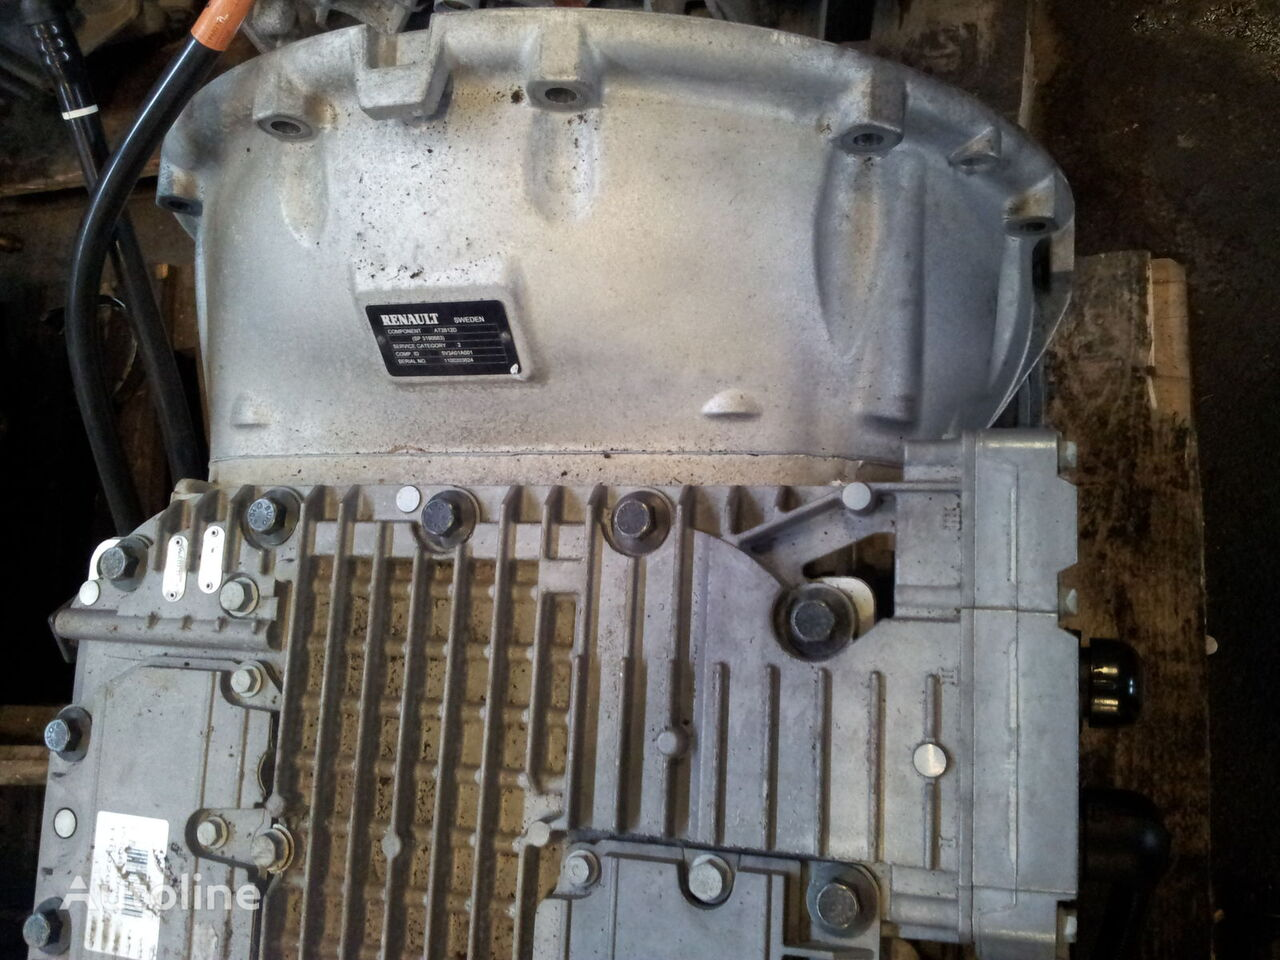 VOLVO FH4, FM4, EURO6, Renault T series, RANGE, GAMA, AT2612D, AT2612E gearbox for VOLVO FH4 EURO6, tractor unit